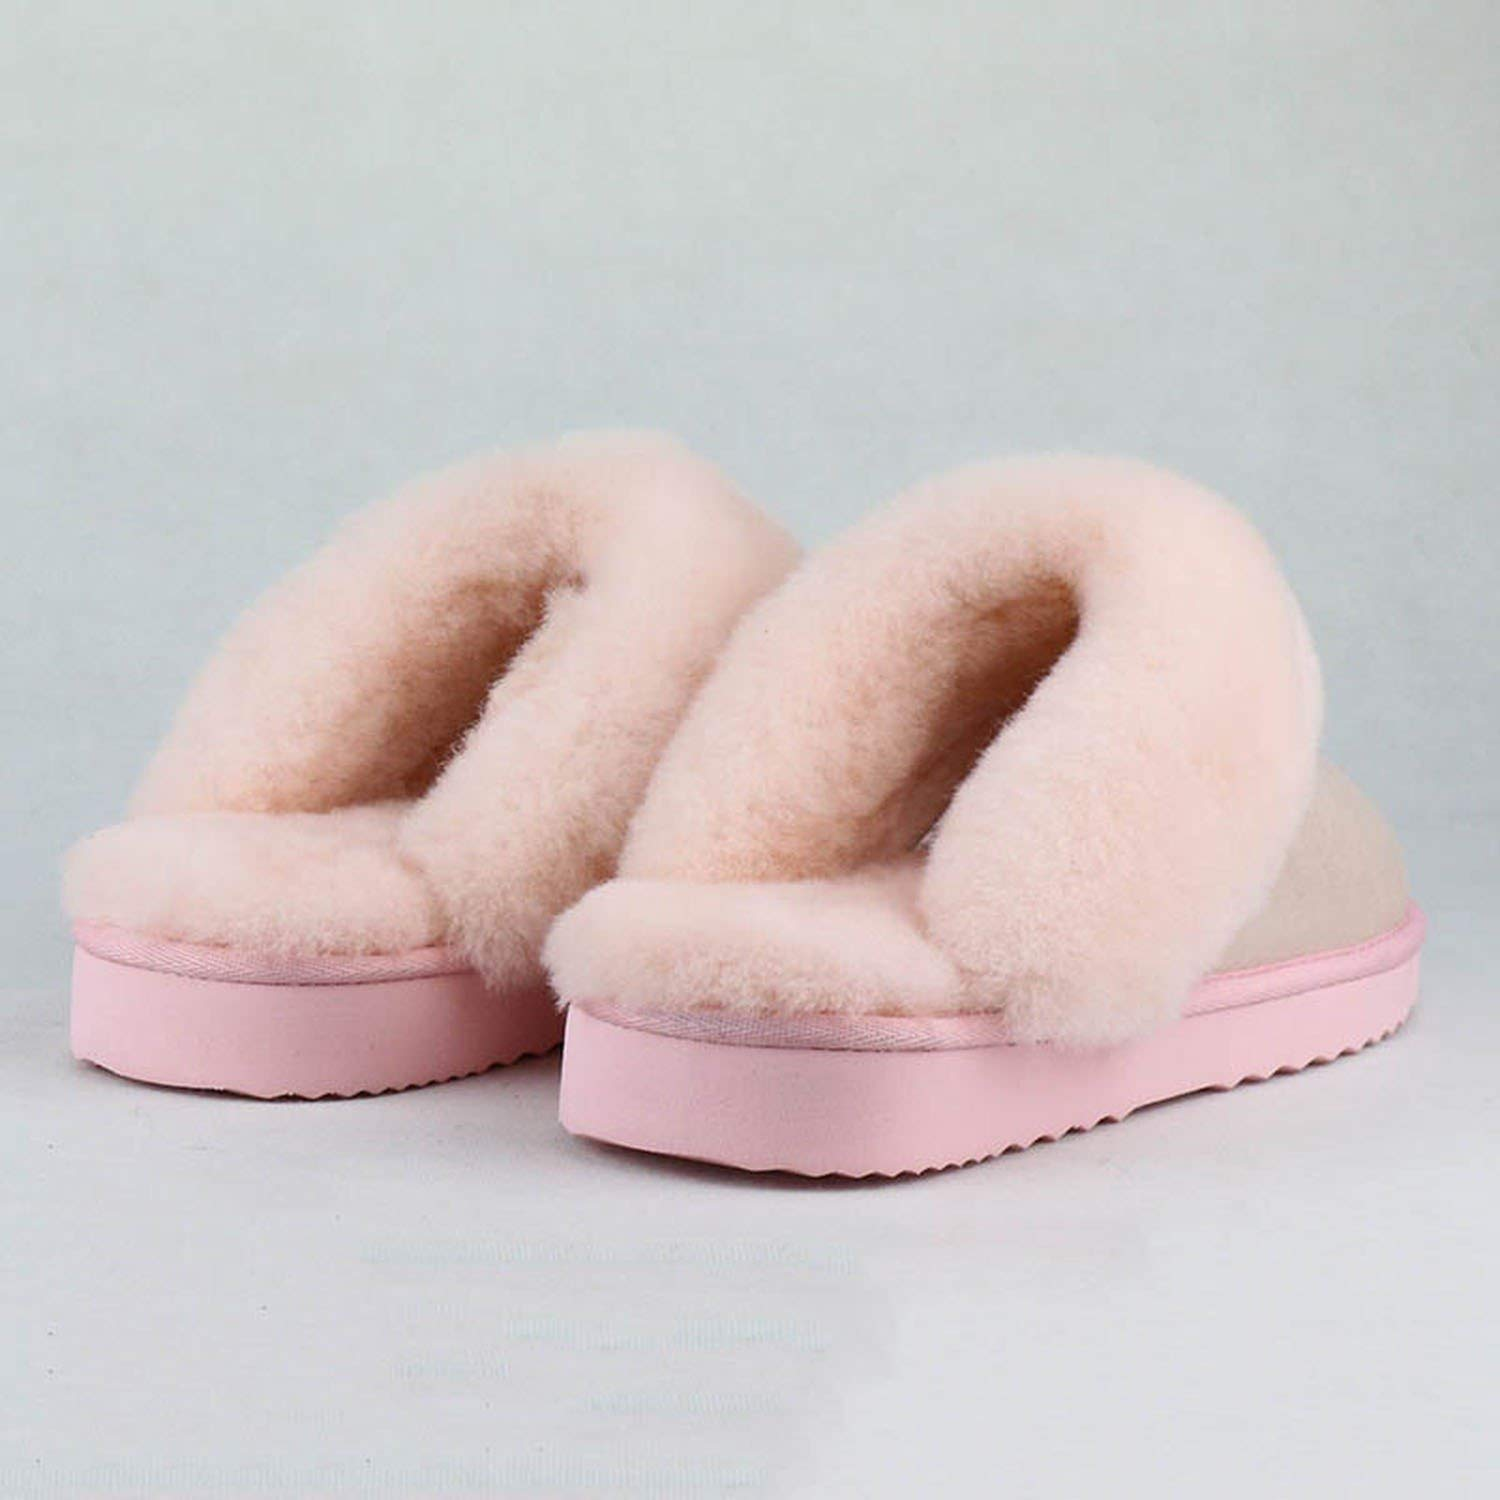 Slippers Fashion Female Winter Slippers Women Warm Indoor Slippers Soft Wool Lady Home Shoes